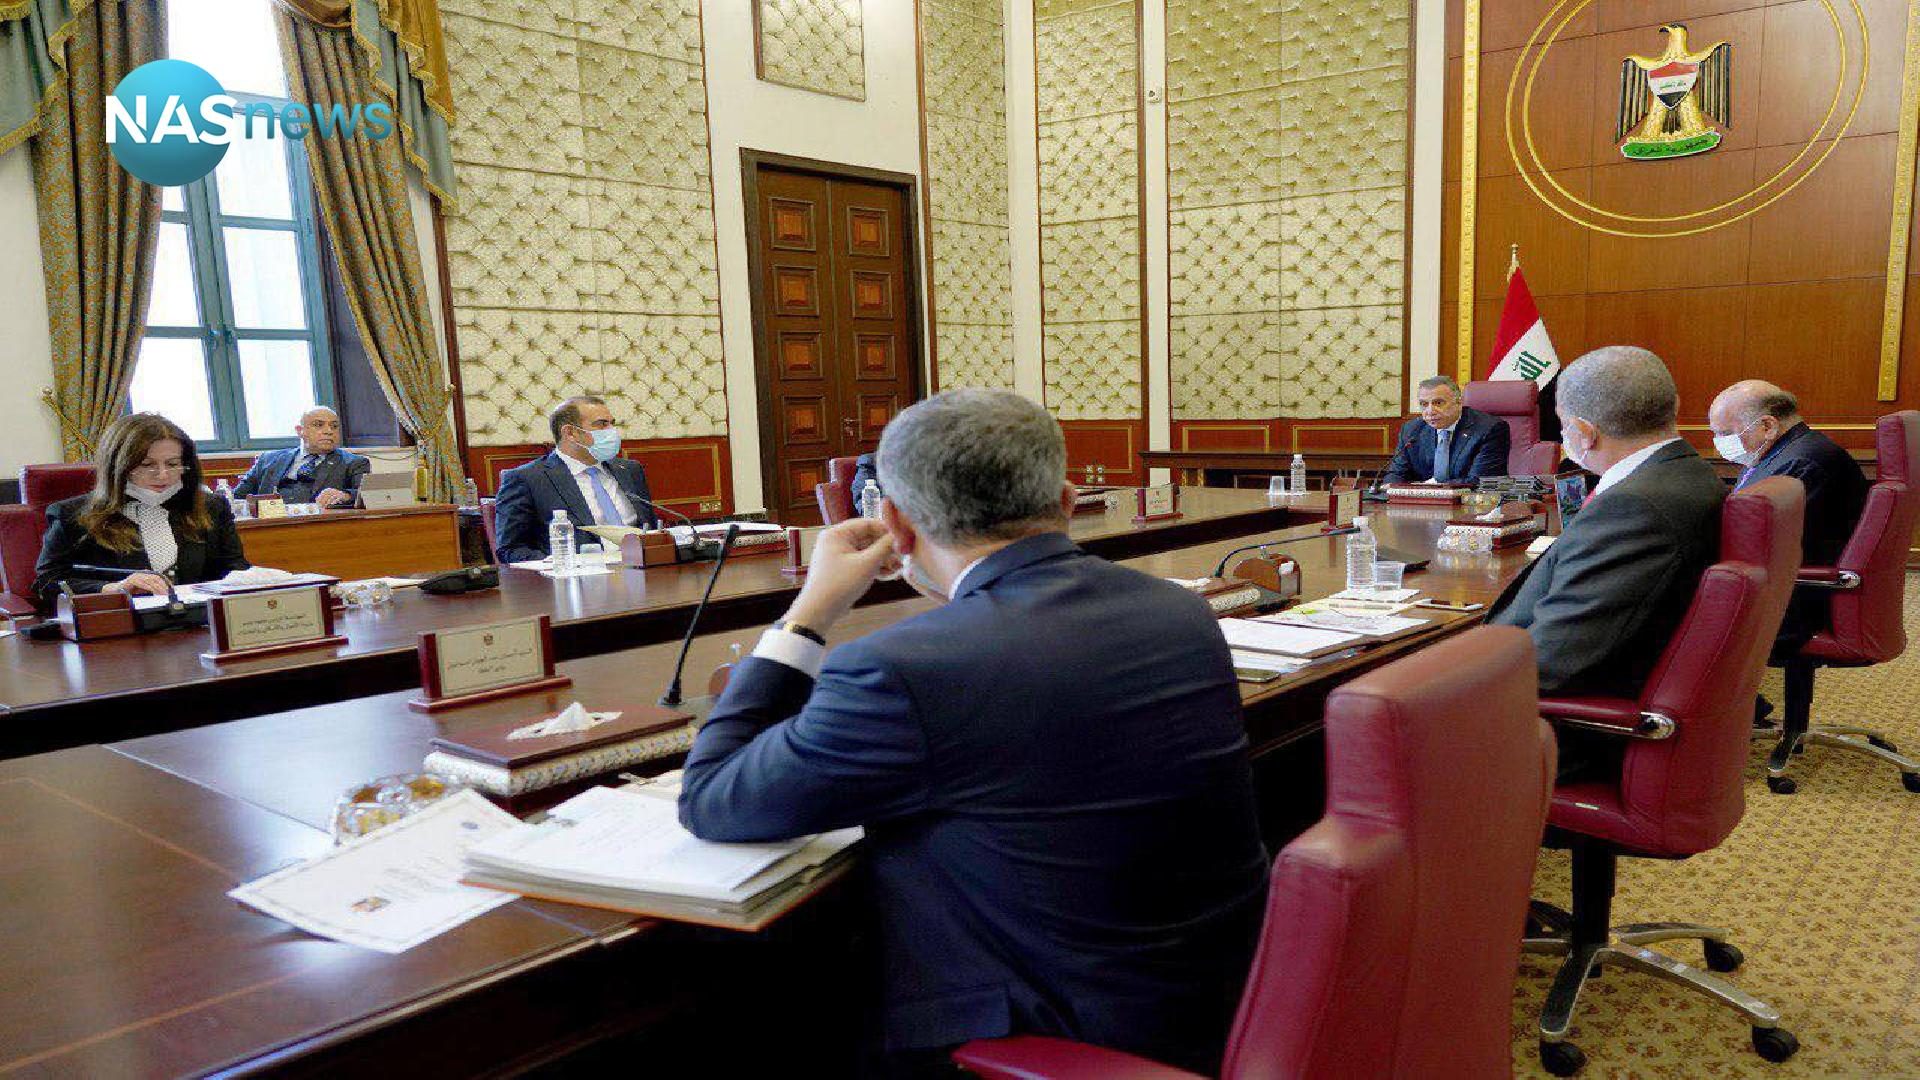 Decisions of today's cabinet session 6b453bc3d-49800-202101090933